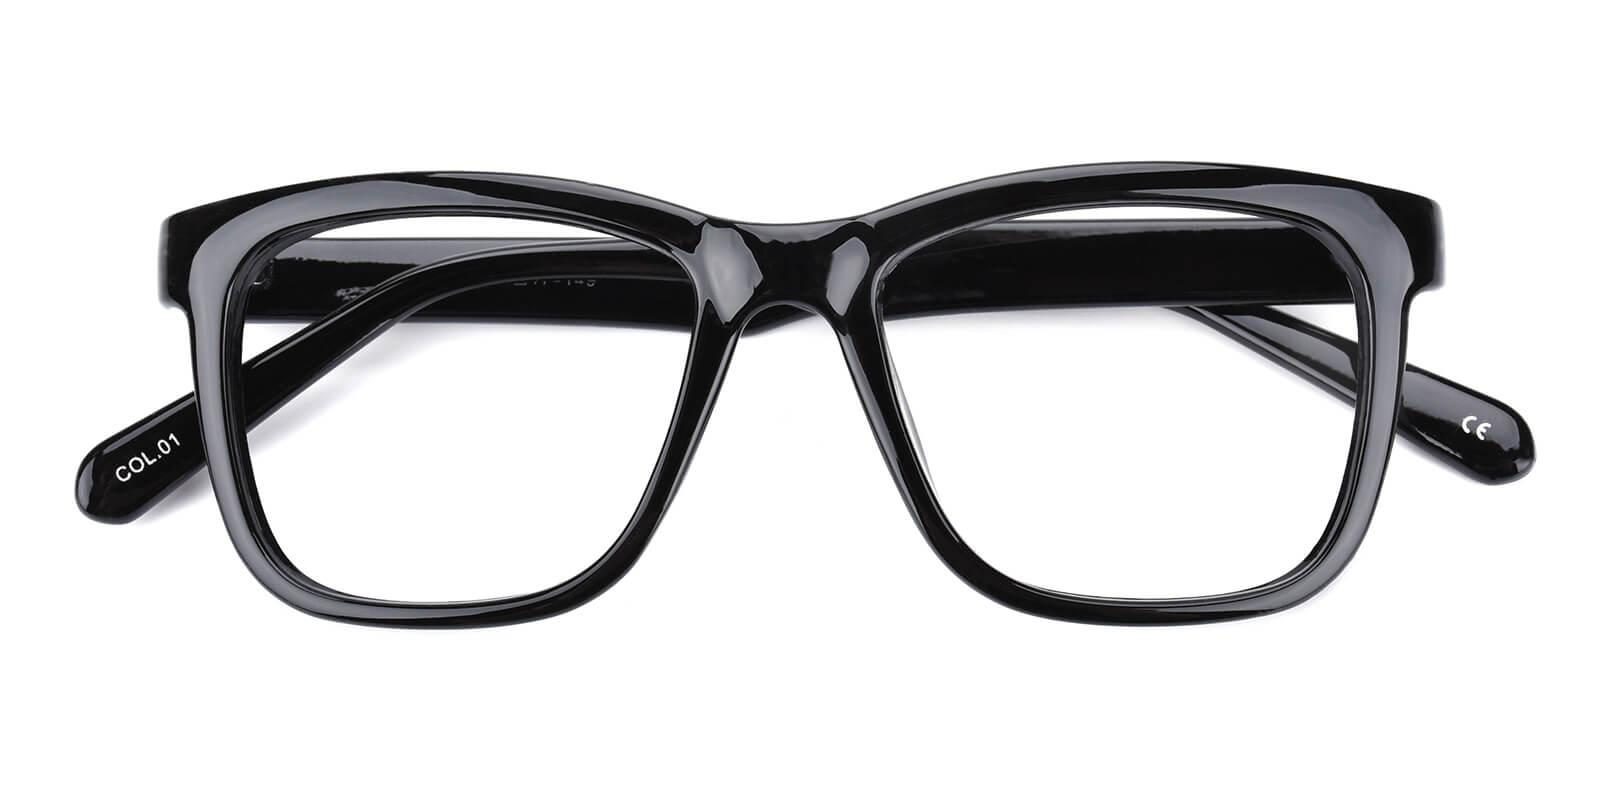 Colaan-Black-Square-Plastic-Eyeglasses-detail